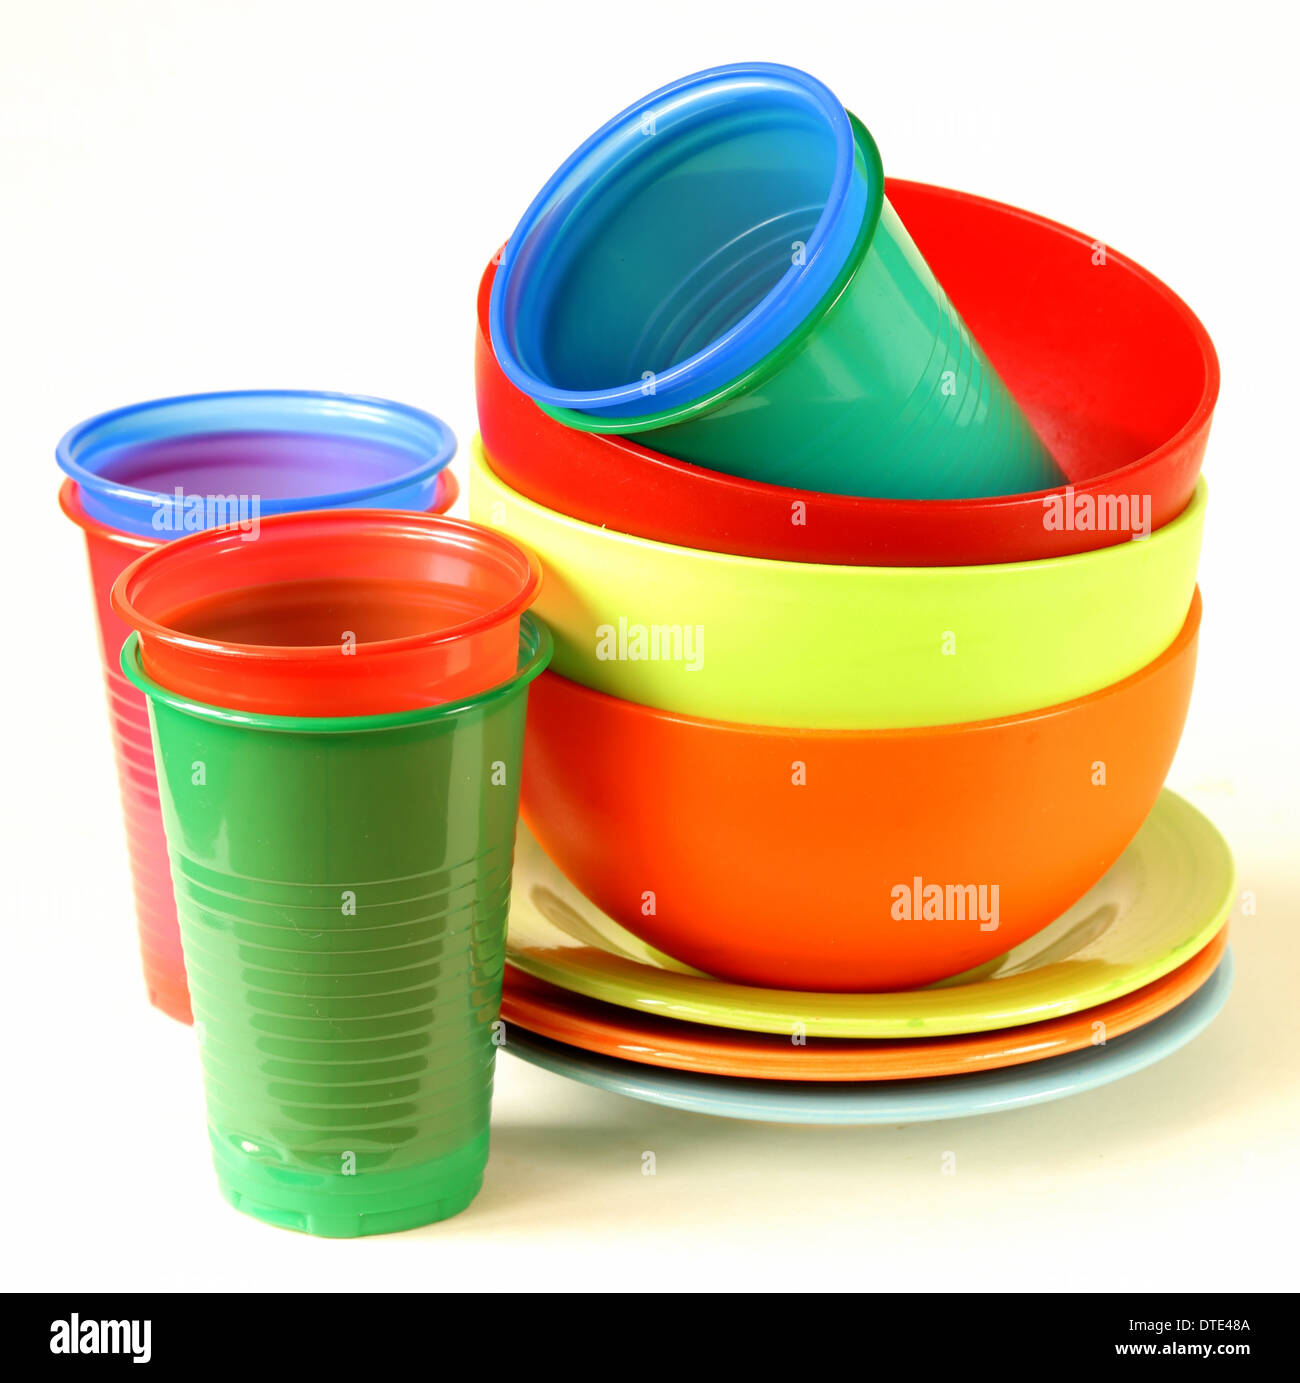 colored plastic tableware (cups bowls plates  sc 1 st  Alamy & colored plastic tableware (cups bowls plates Stock Photo Royalty ...